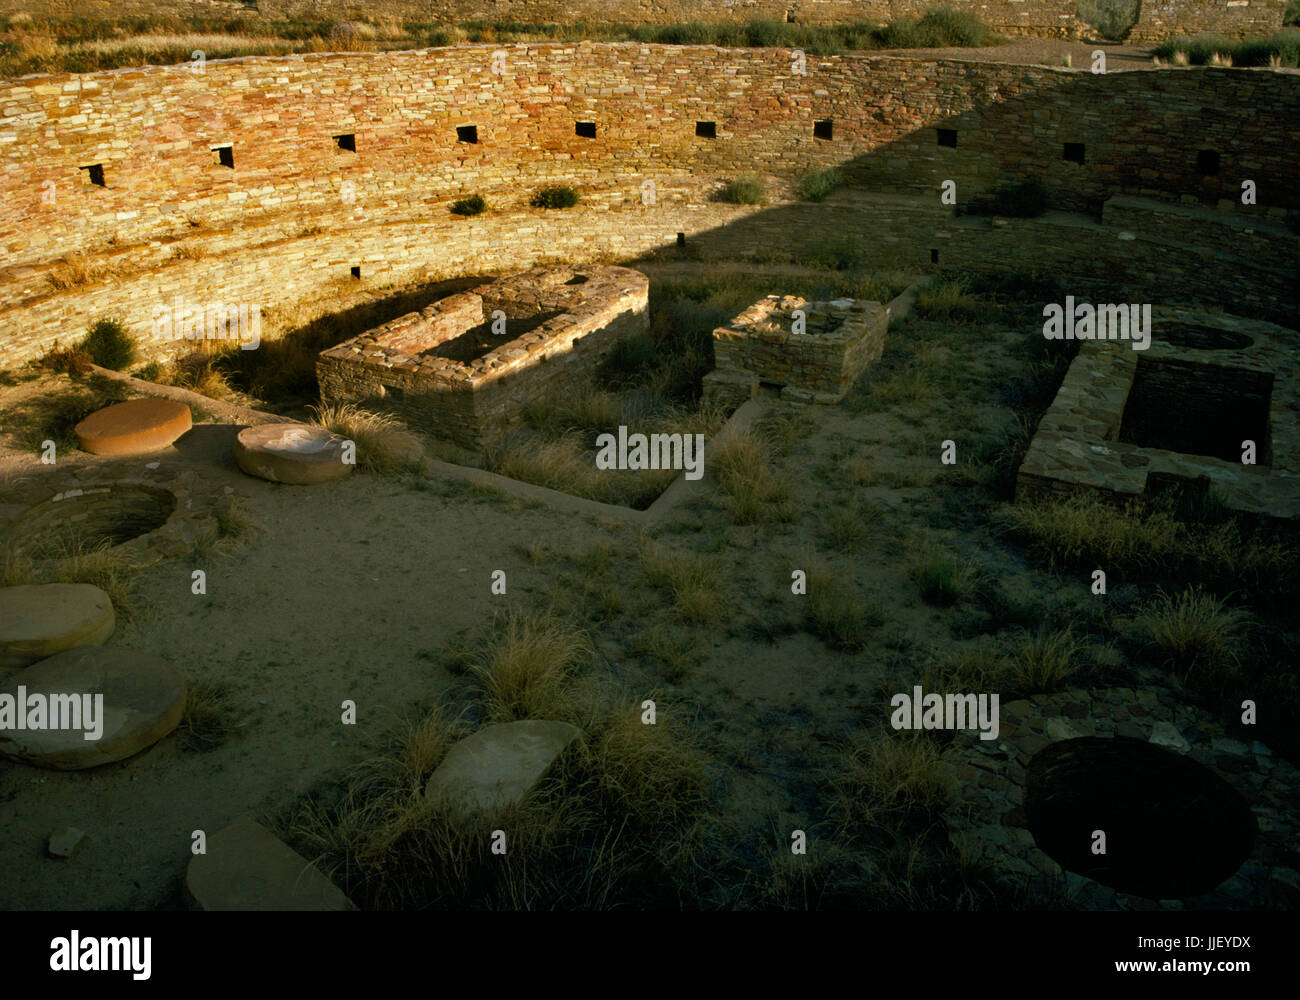 Interior view SE of the great kiva at Chetro Ketl Pueblo, Chaco Canyon, New Mexico: a circular, subterranean room Stock Photo